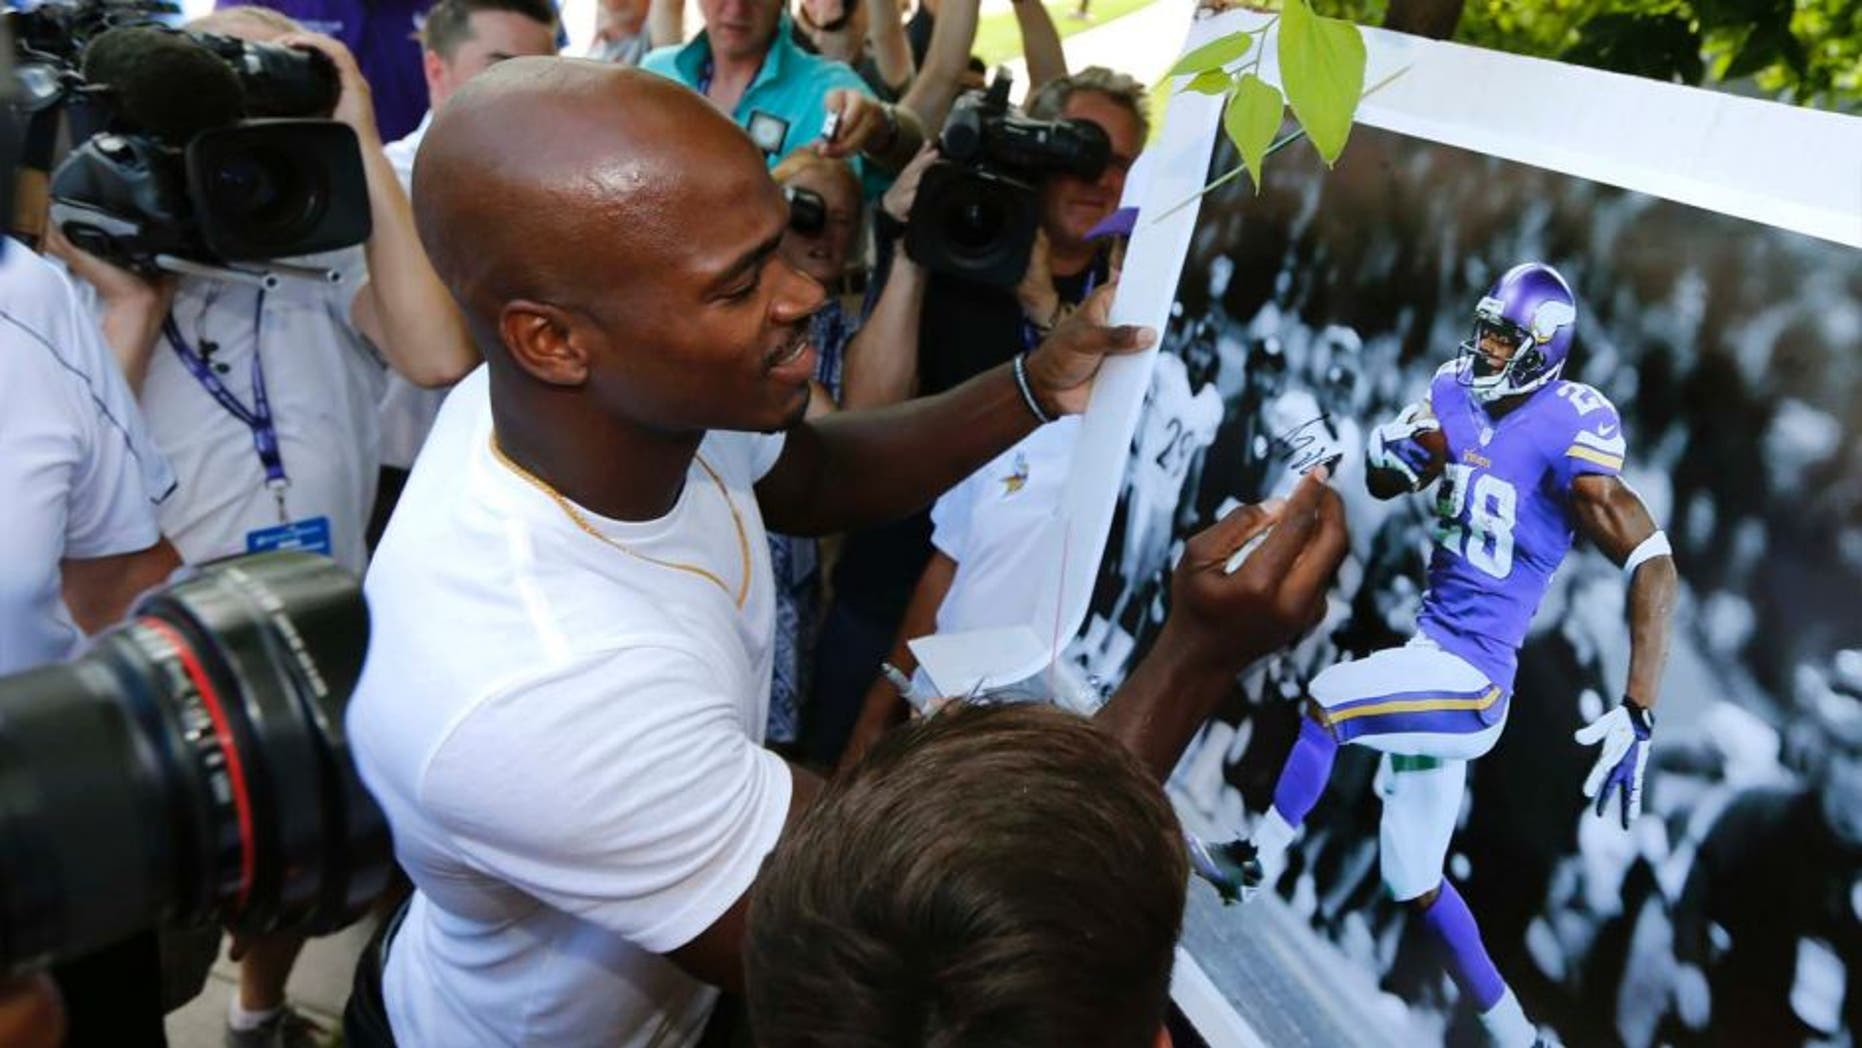 Minnesota Vikings running back Adrian Peterson signs autograph as he reports to an NFL football training camp at Minnesota State University Saturday, July 25, 2015, in Mankato, Minn.